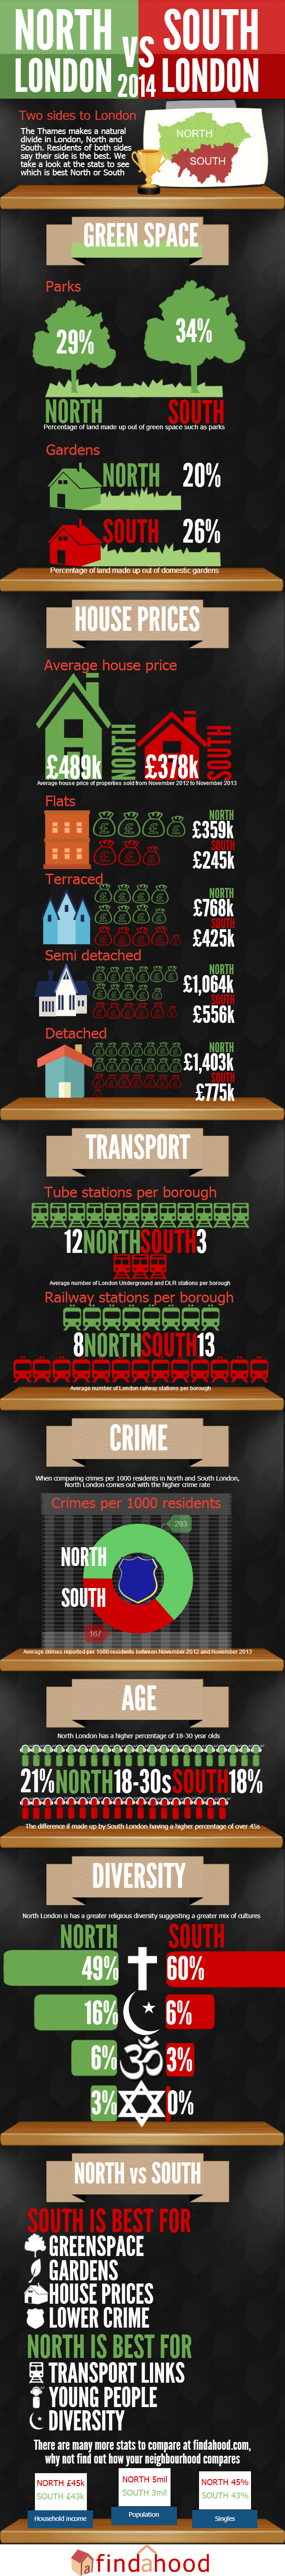 North vs South London infographic